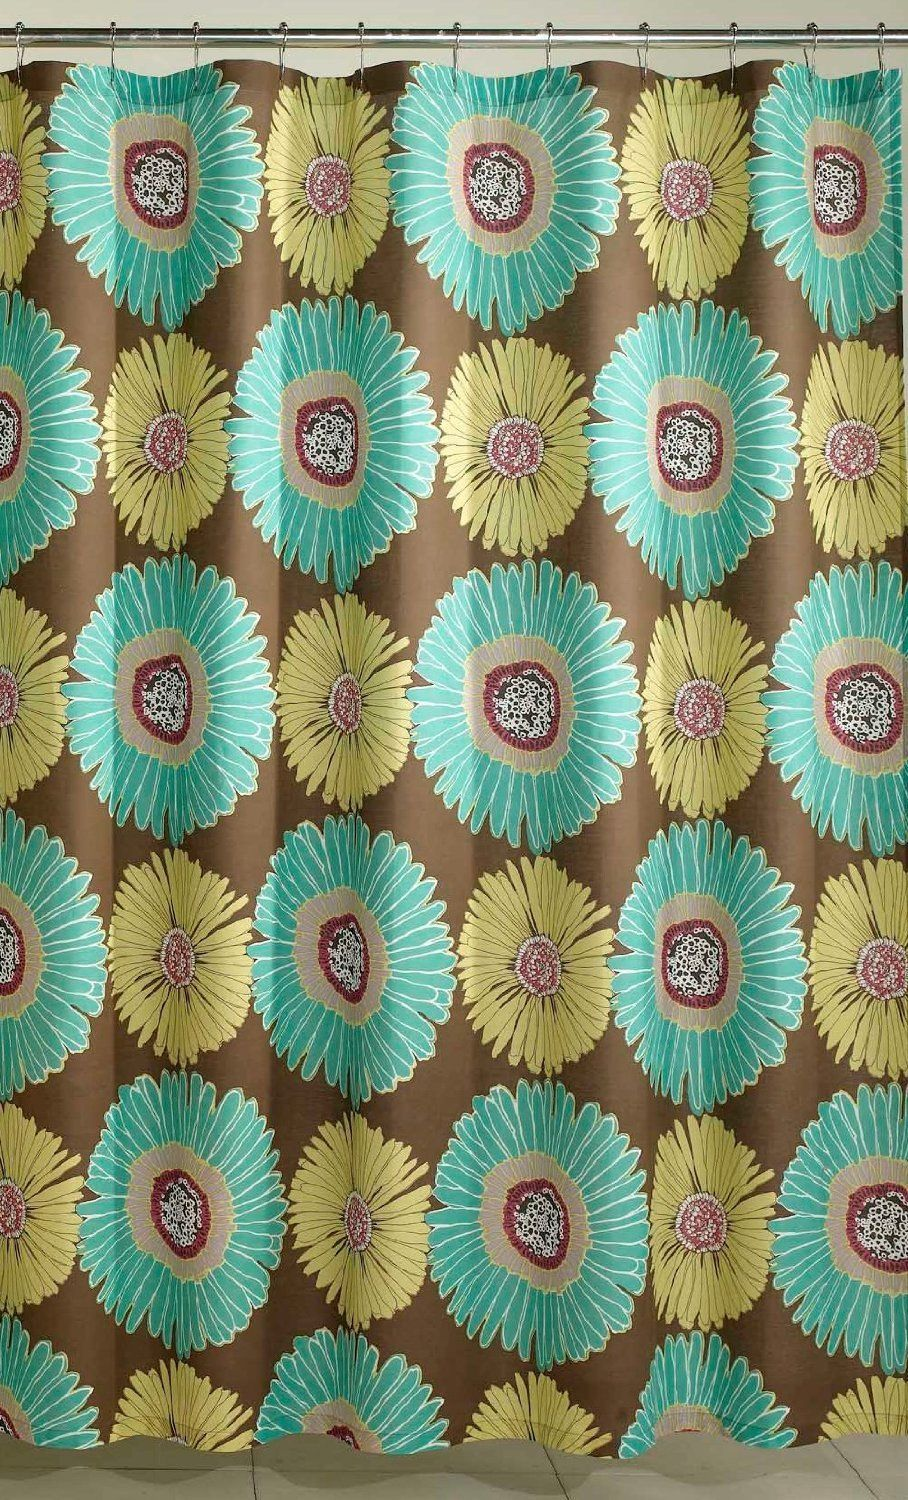 M Styles Sunflower Shower Curtain Chocolate Brown Lime Green Aqua Blue NEW